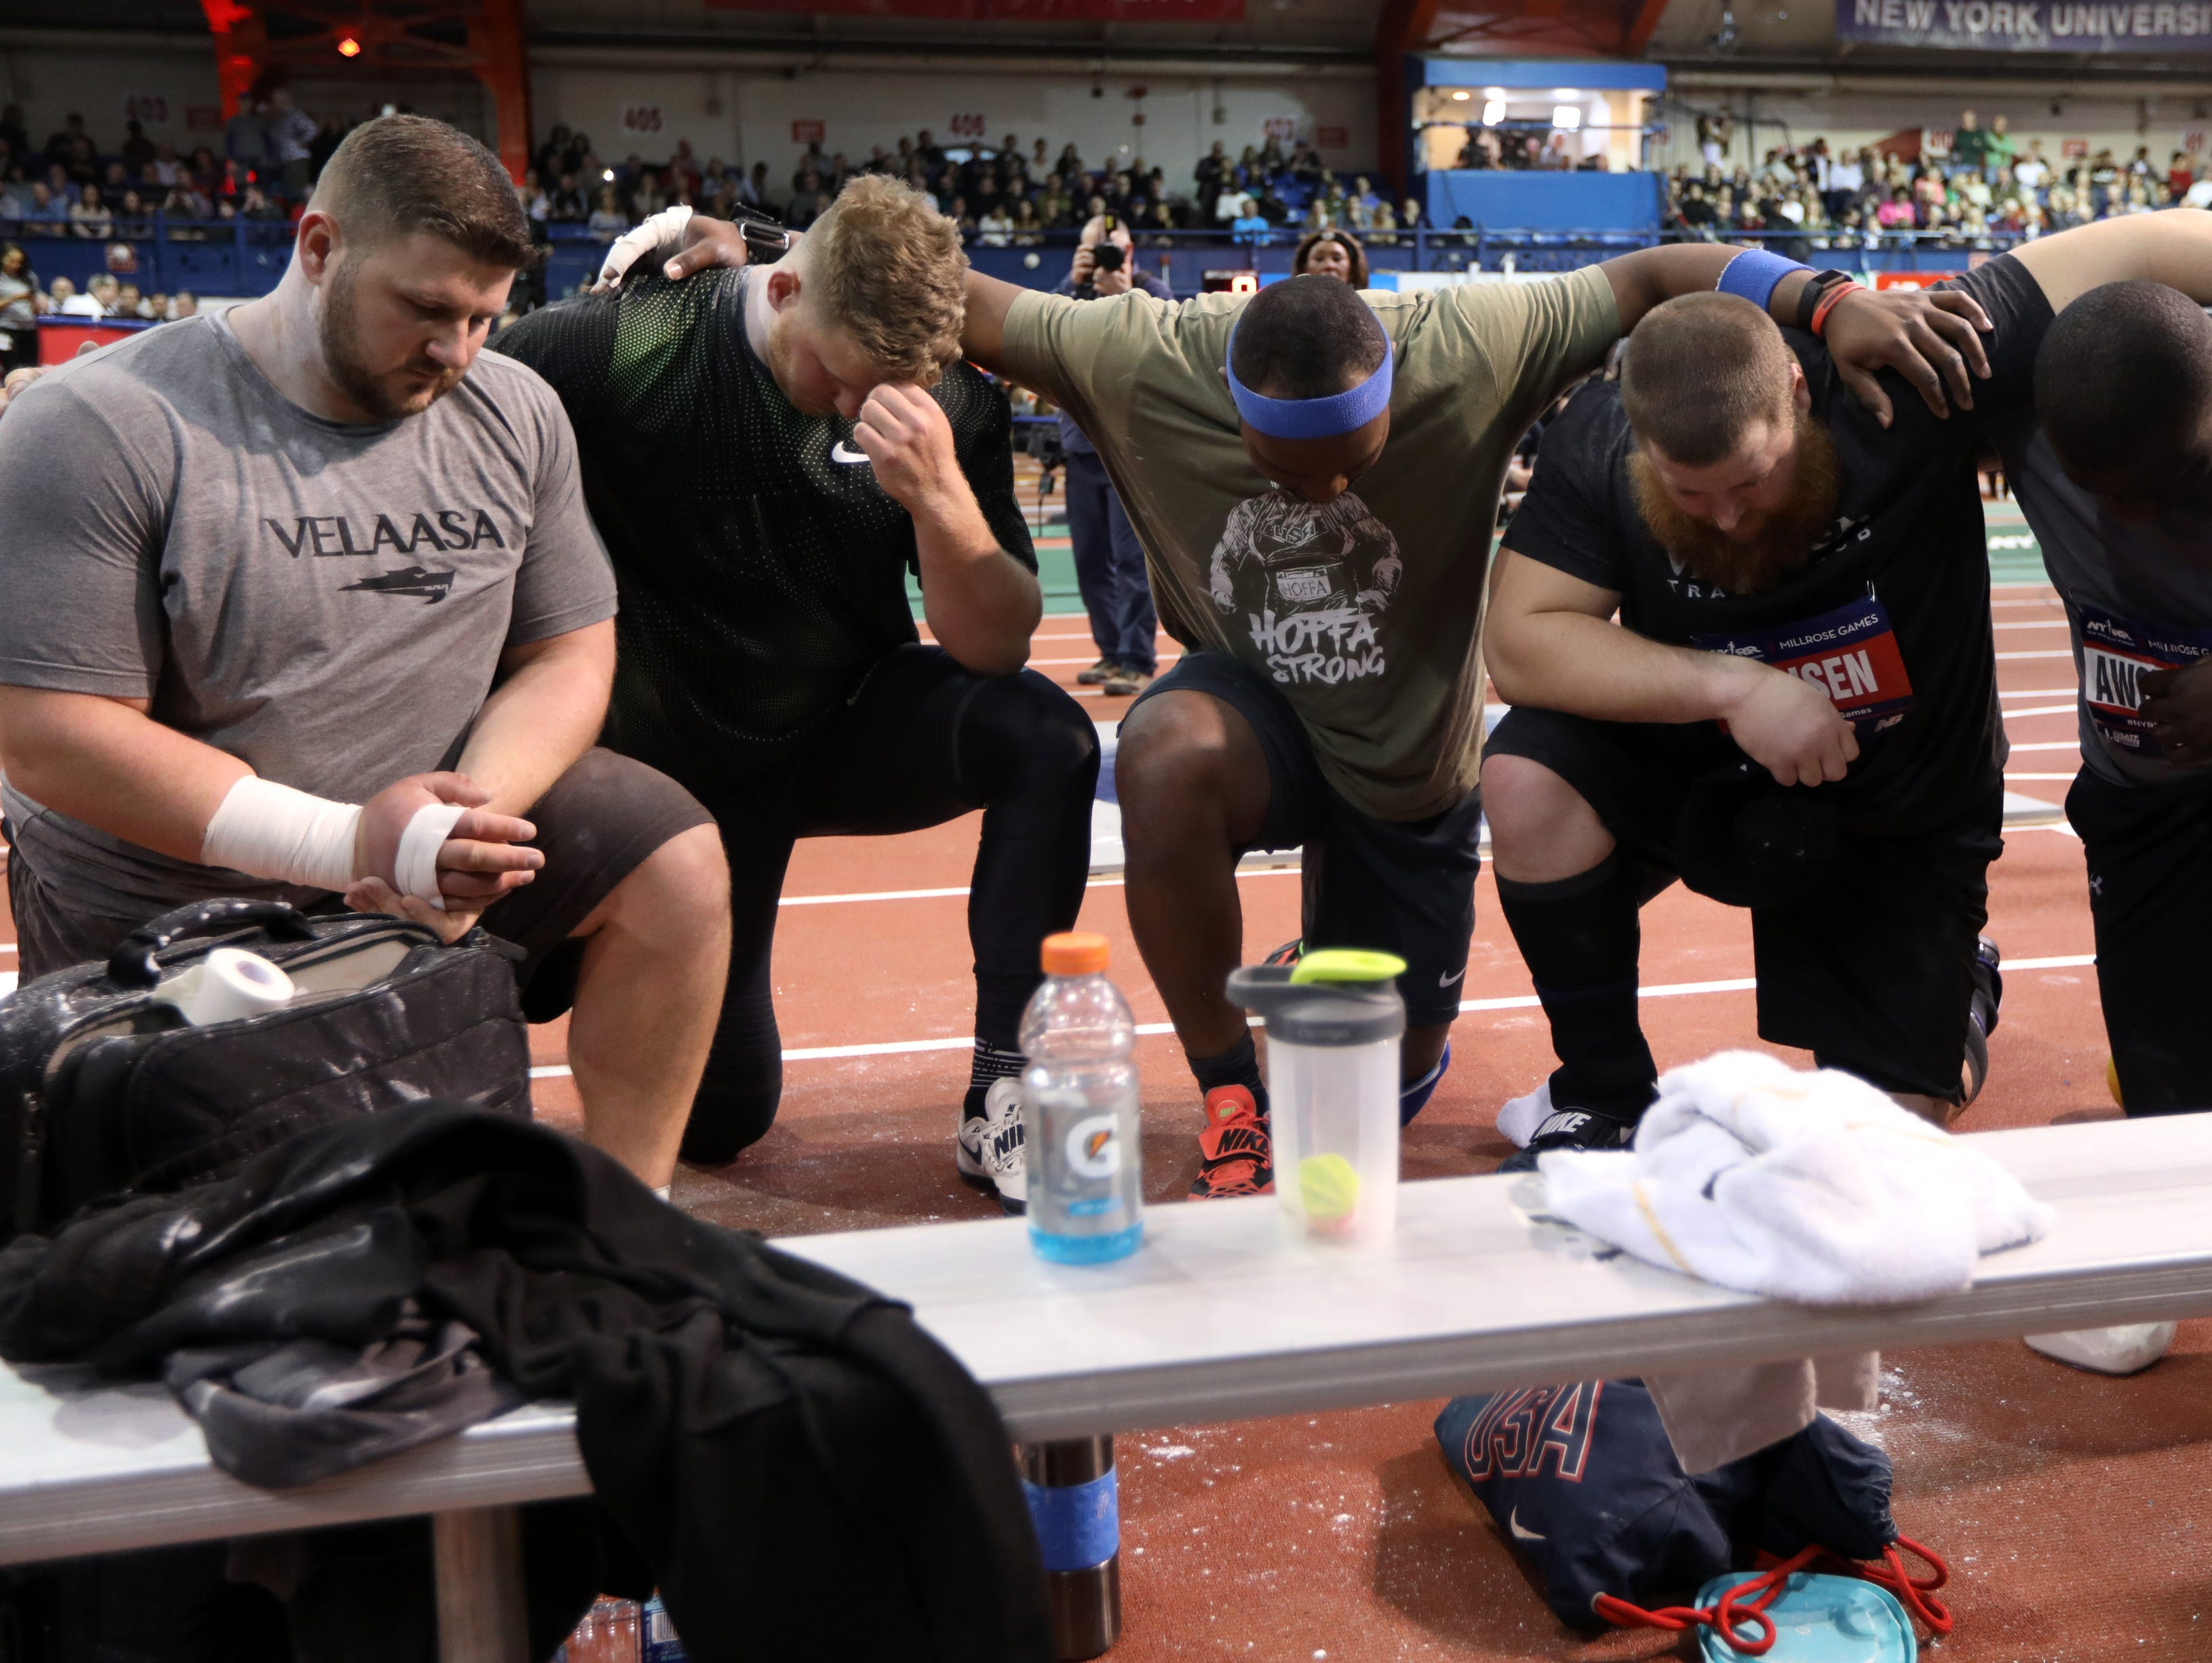 Shot put competitors pray for Kemoy Campbell (not shown), Campbell was running as the rabbit in the 3000 meter race. At one point he stepped off the track and collapsed.  He was taken away in a stretcher. Saturday, February 9, 2019